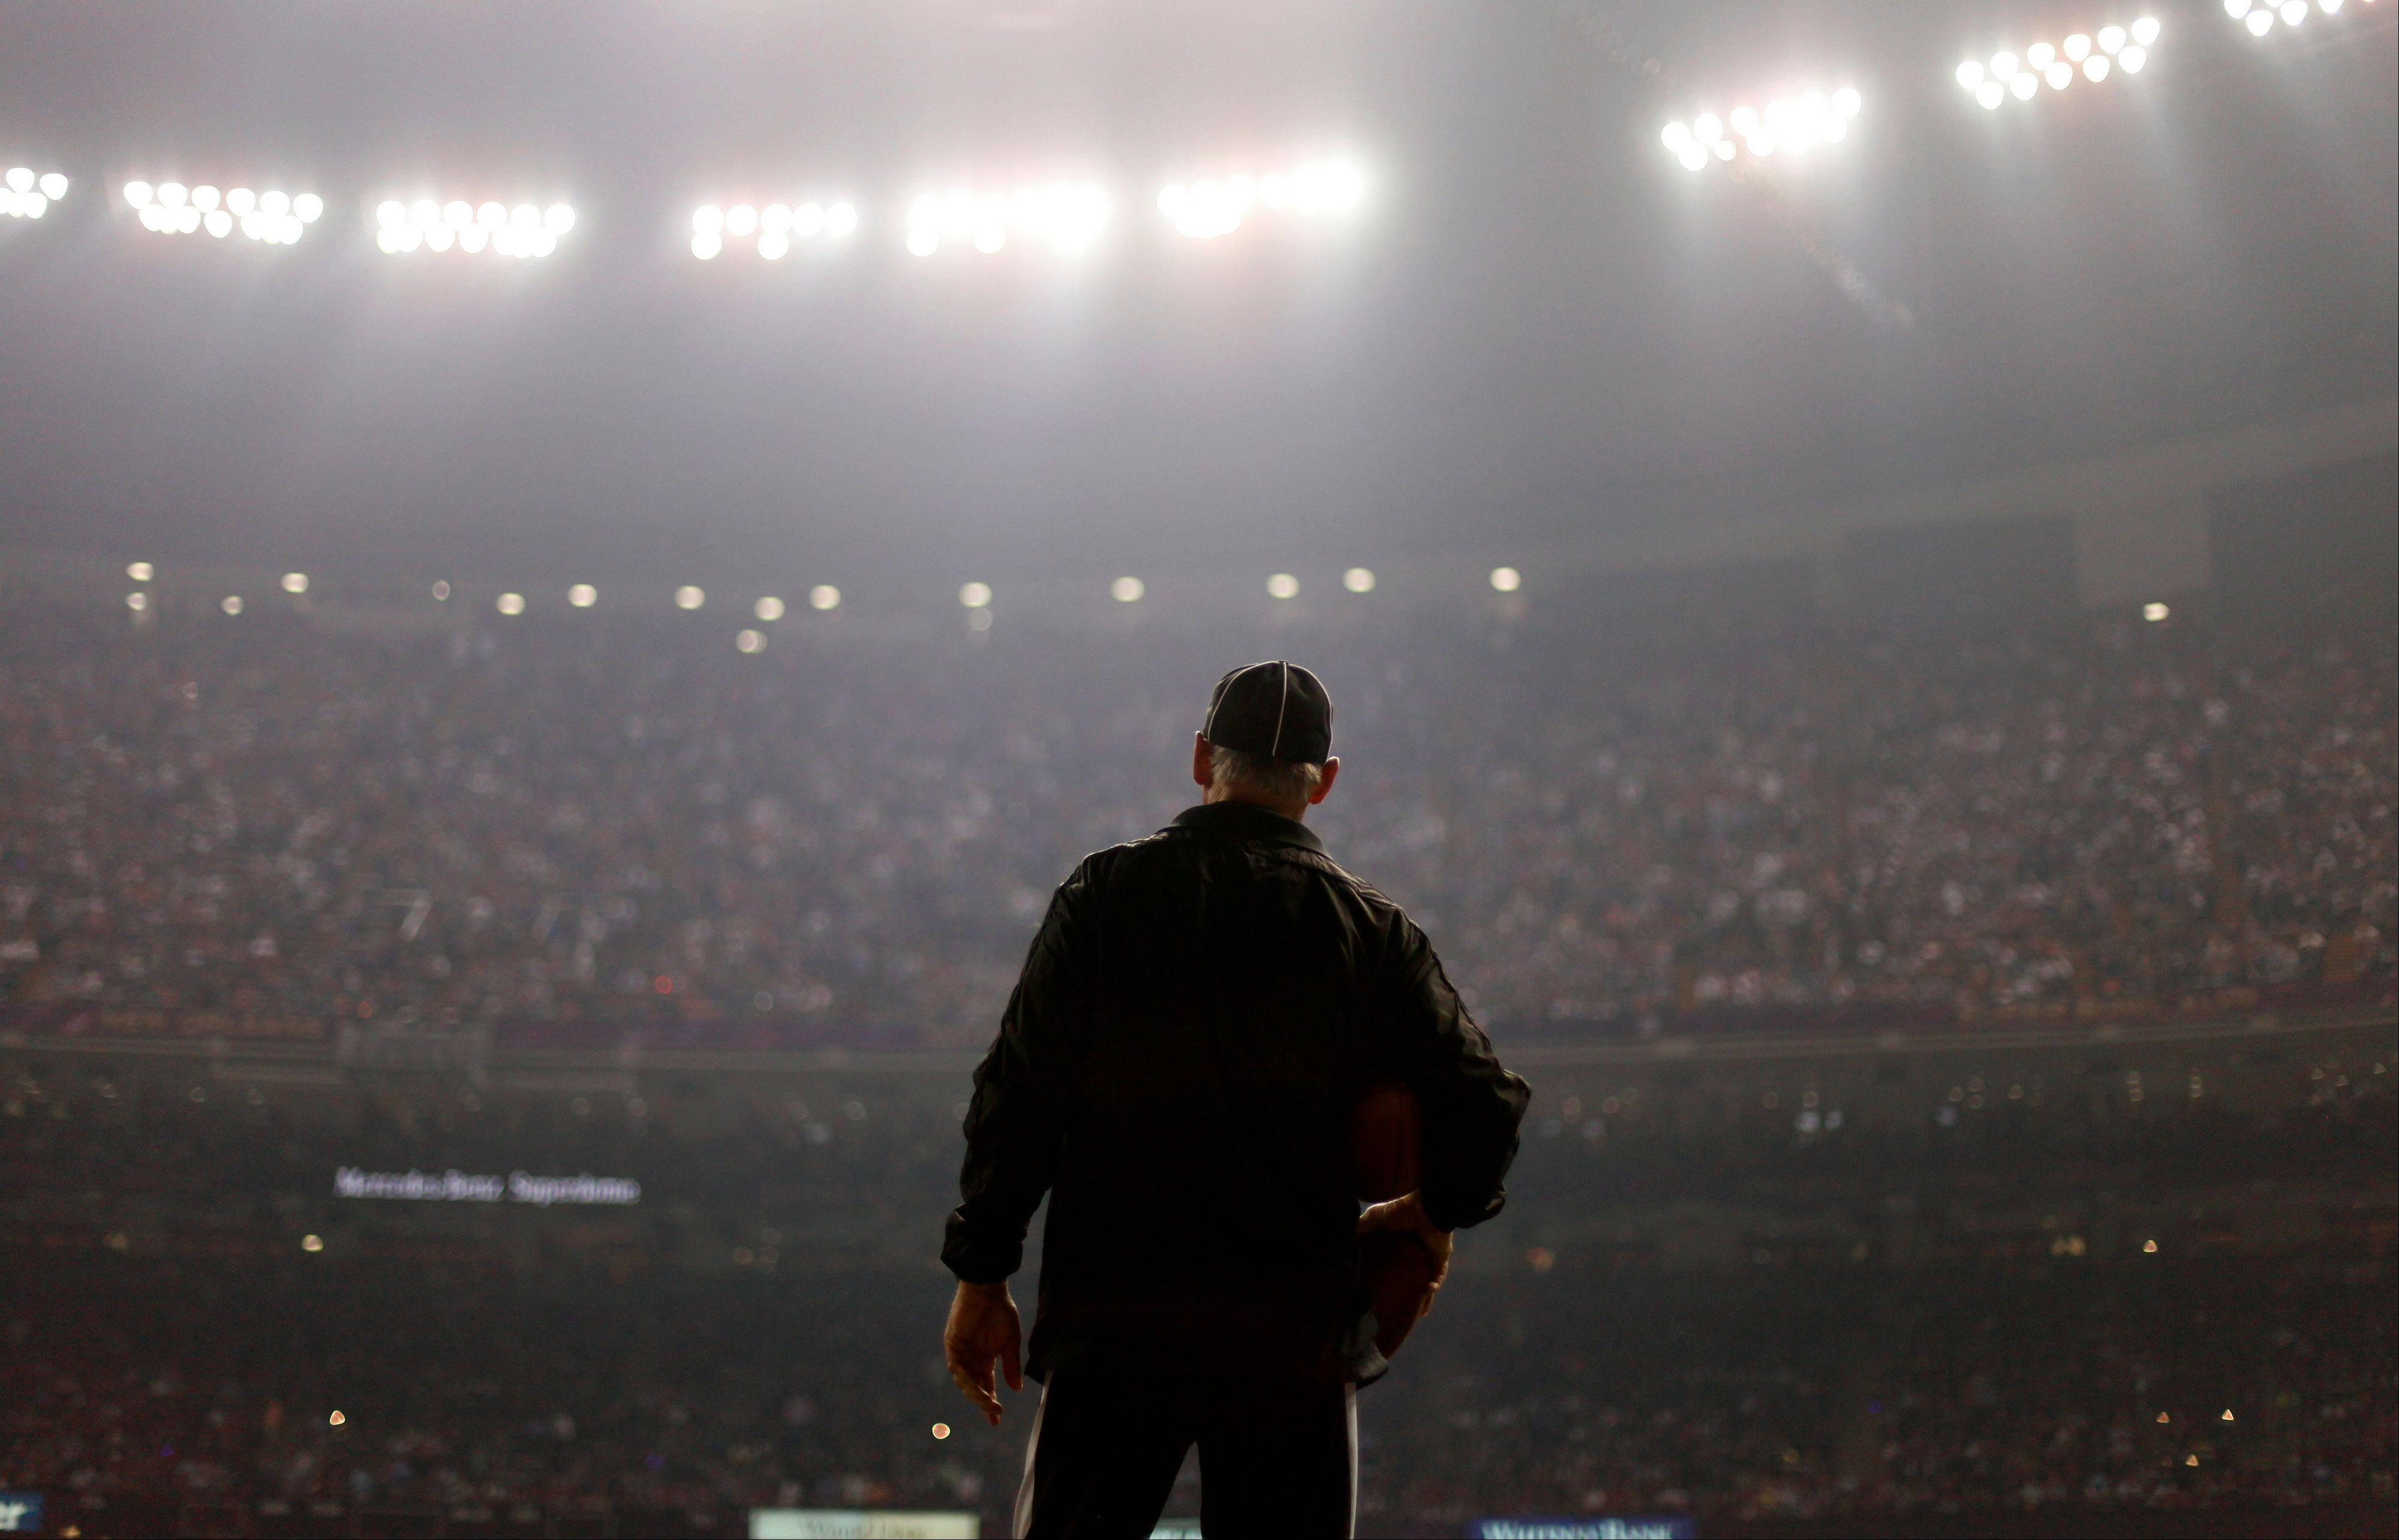 An official looks on during a Superdome power outage in the second half of the NFL Super Bowl XLVII on Sunday. The outage provided a major glitch to what has largely been viewed as a smooth week for New Orleans.